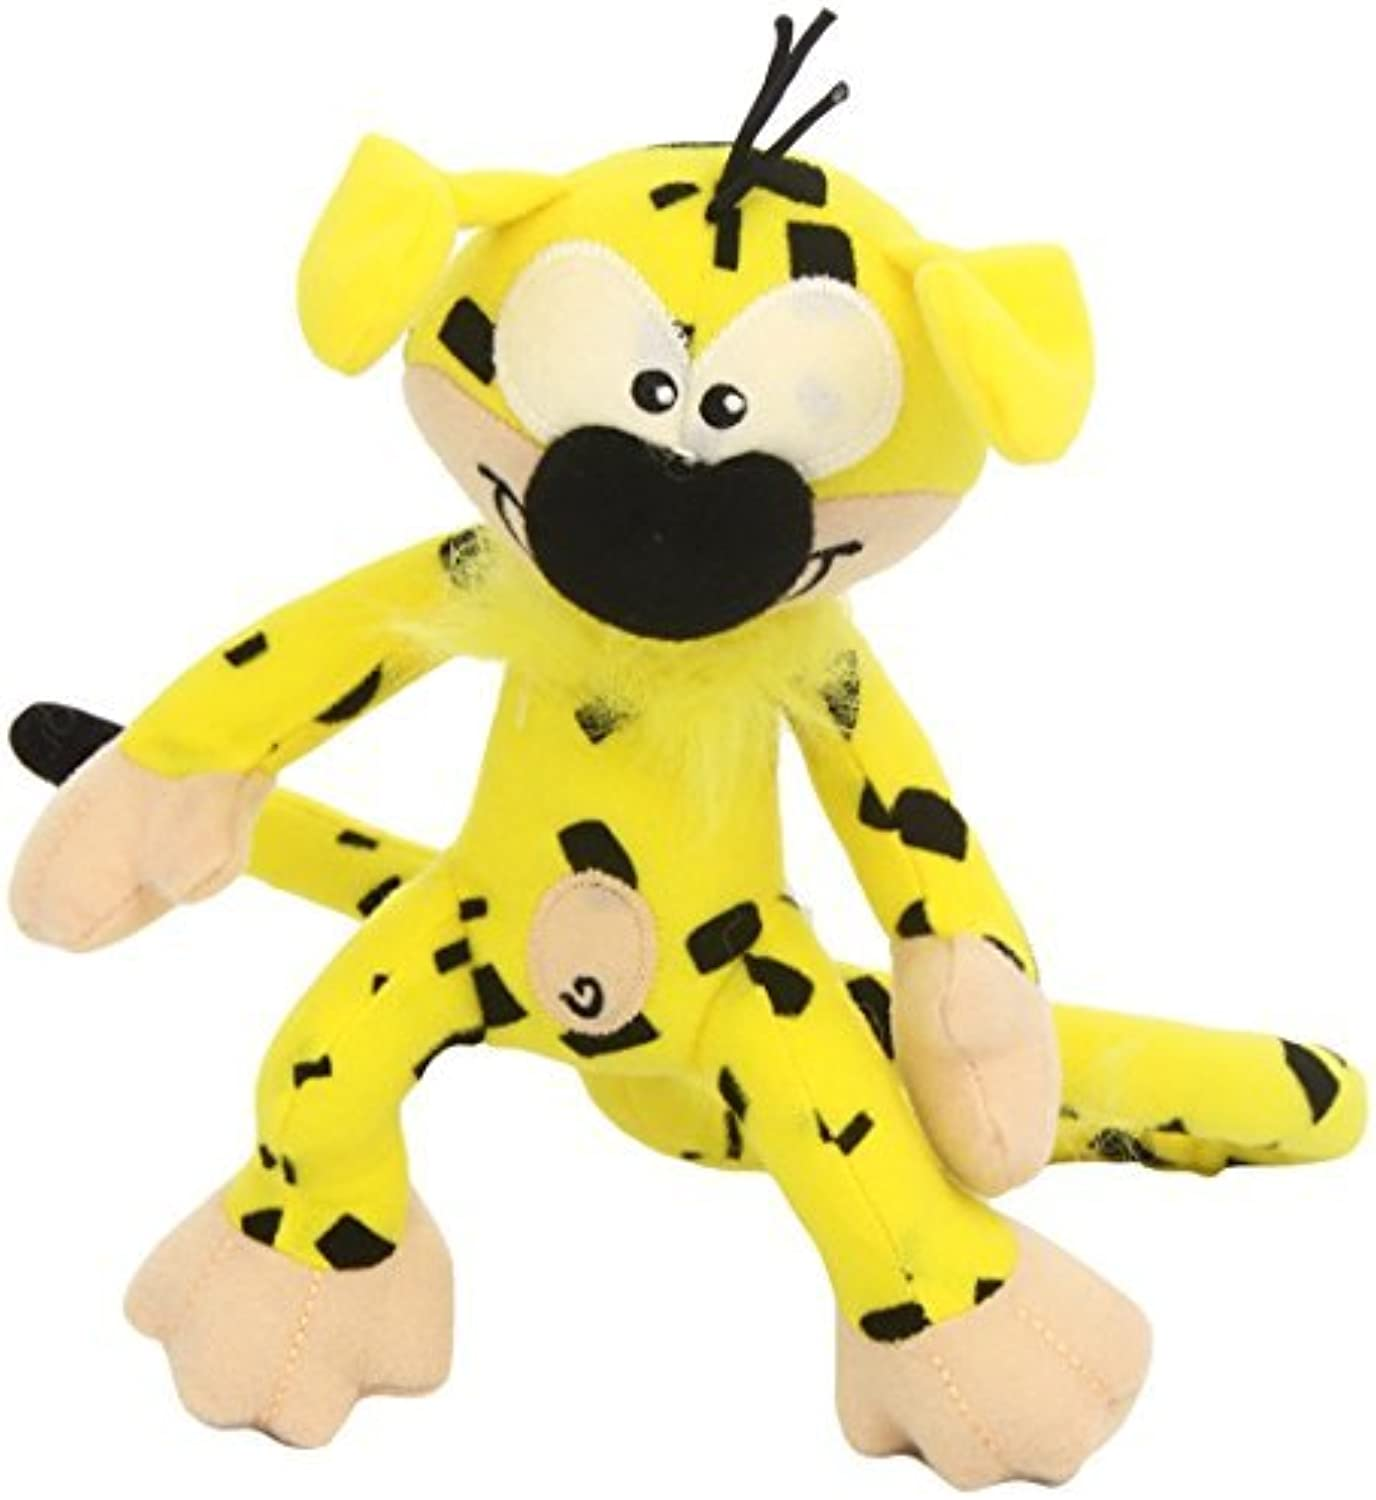 Marsupilami sonique soft toy 18 cm by Marsupilami